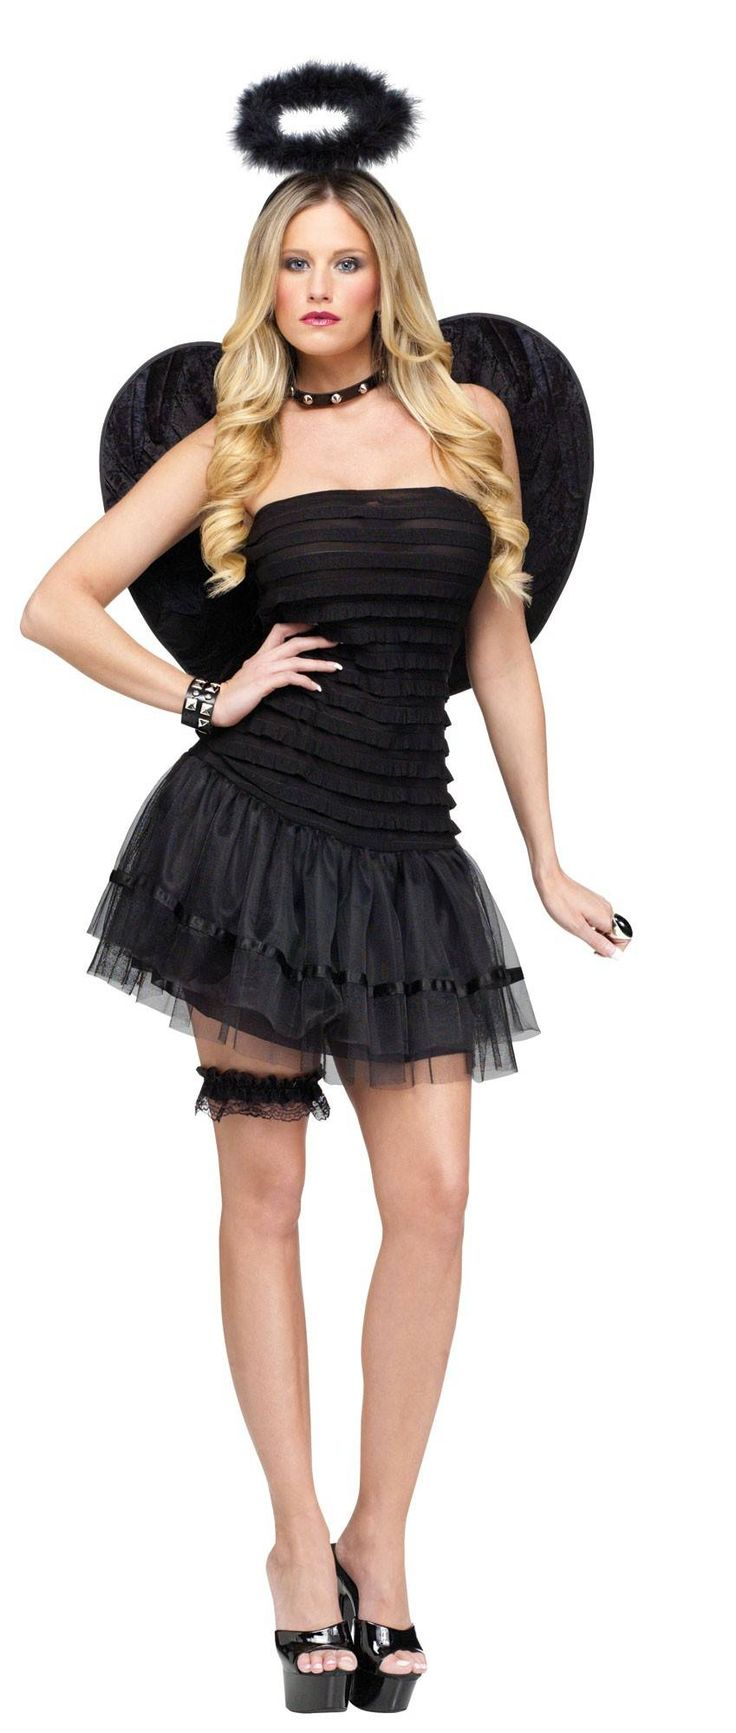 Black dress costume ideas - Find This Pin And More On Costume Ideas